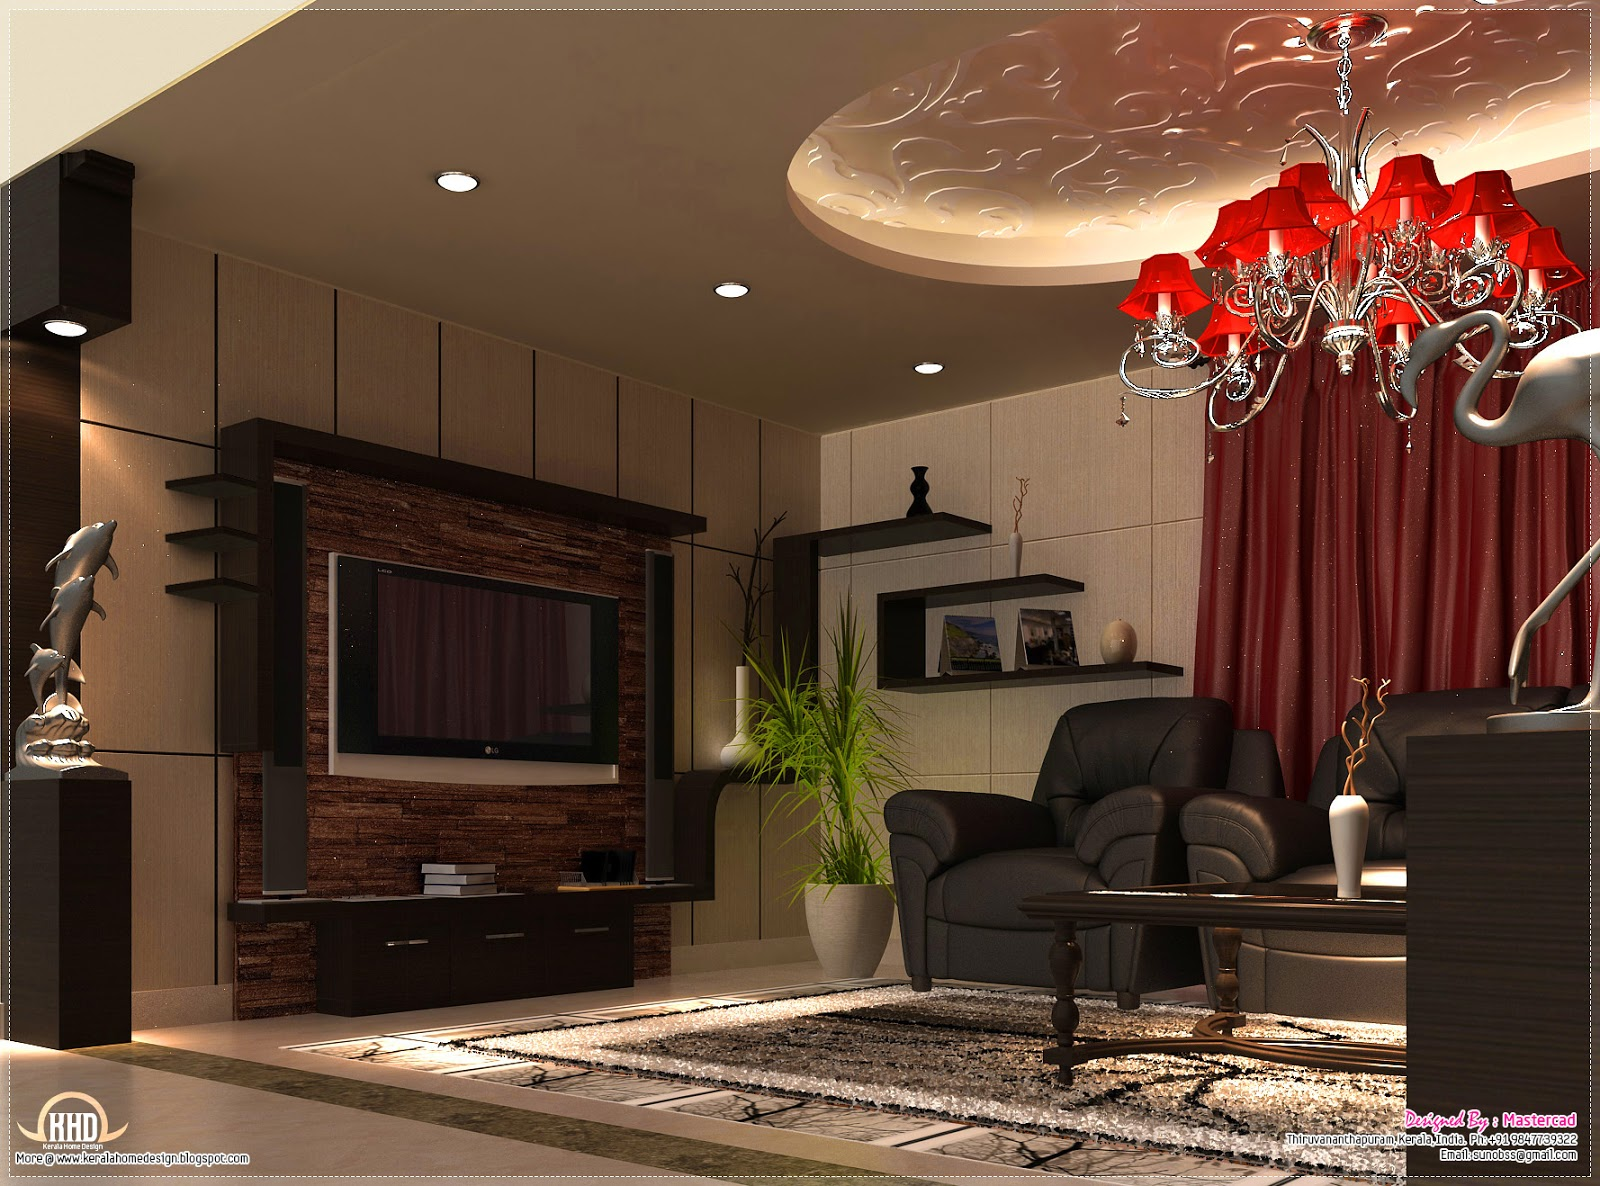 Interior design ideas kerala home design and floor plans for Kerala house living room interior design